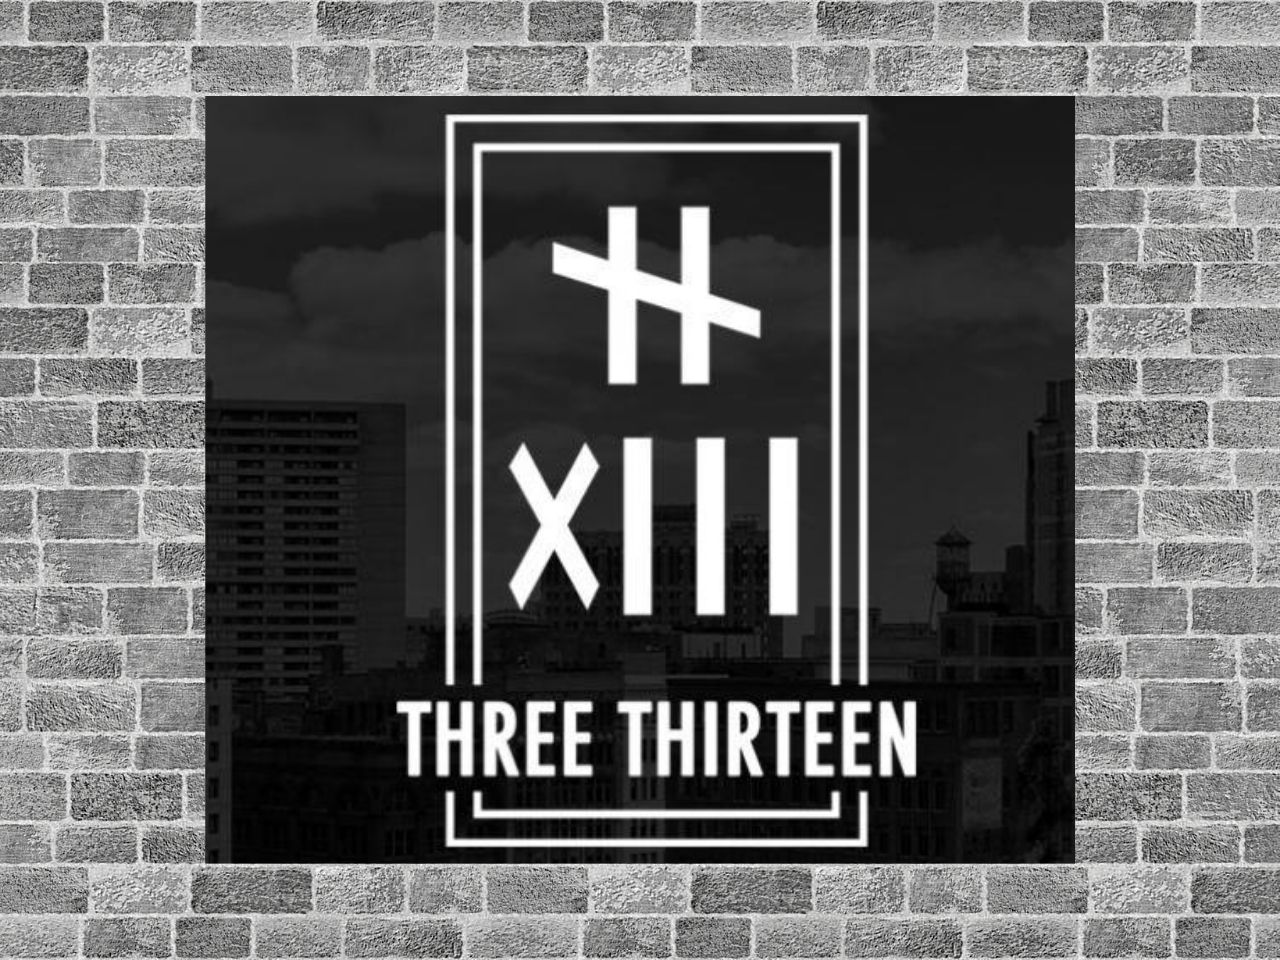 Three Thirteen